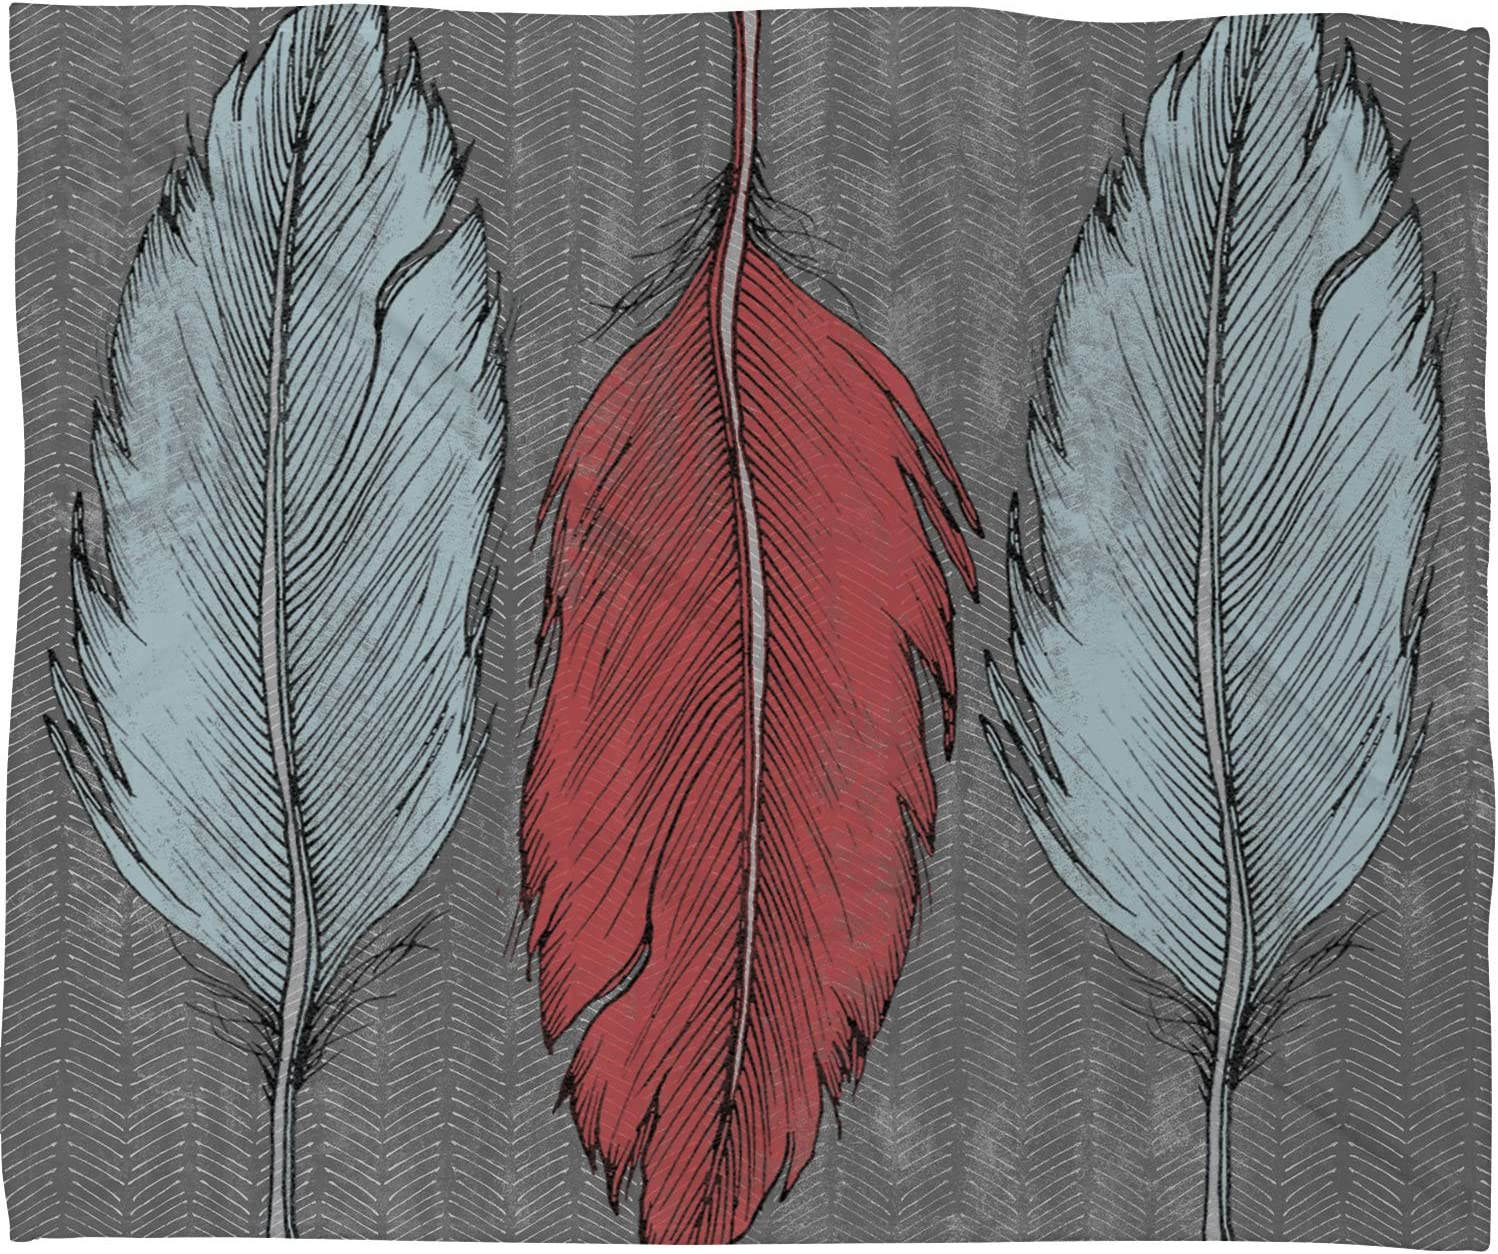 Deny Designs Recommended Wesley Bird Feathered Fleece Free shipping anywhere in the nation x 80 Blanket Throw 60